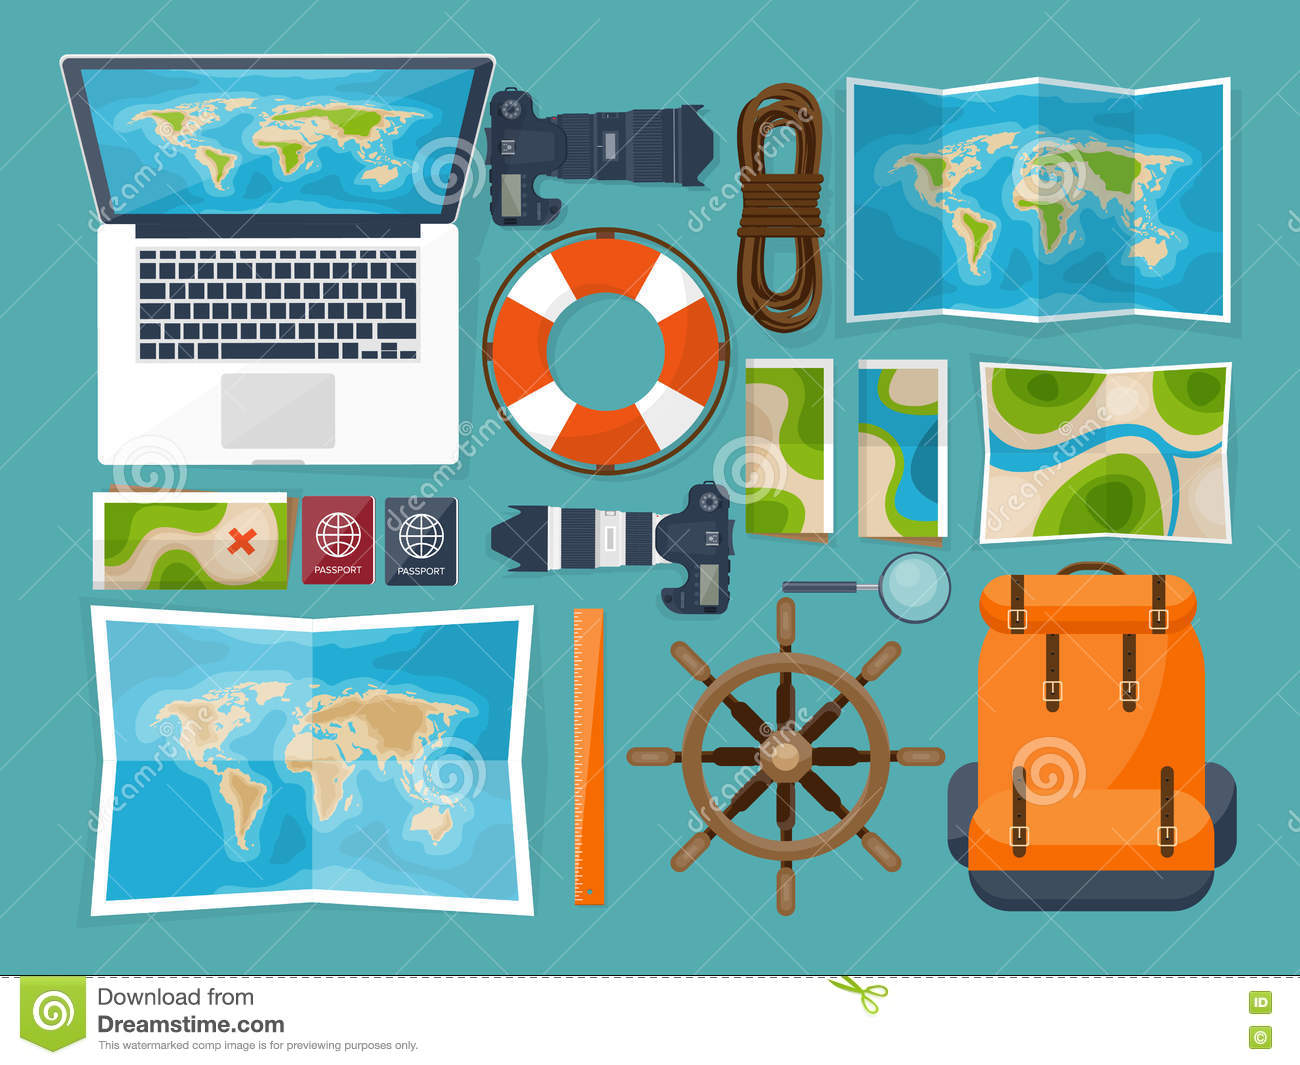 Travel and tourism flat style world earth map globe trip tour world earth map globe trip tour journey summer holidays travelling exploring worldwide adventureexpedition table workplace traveler navigation or gumiabroncs Choice Image